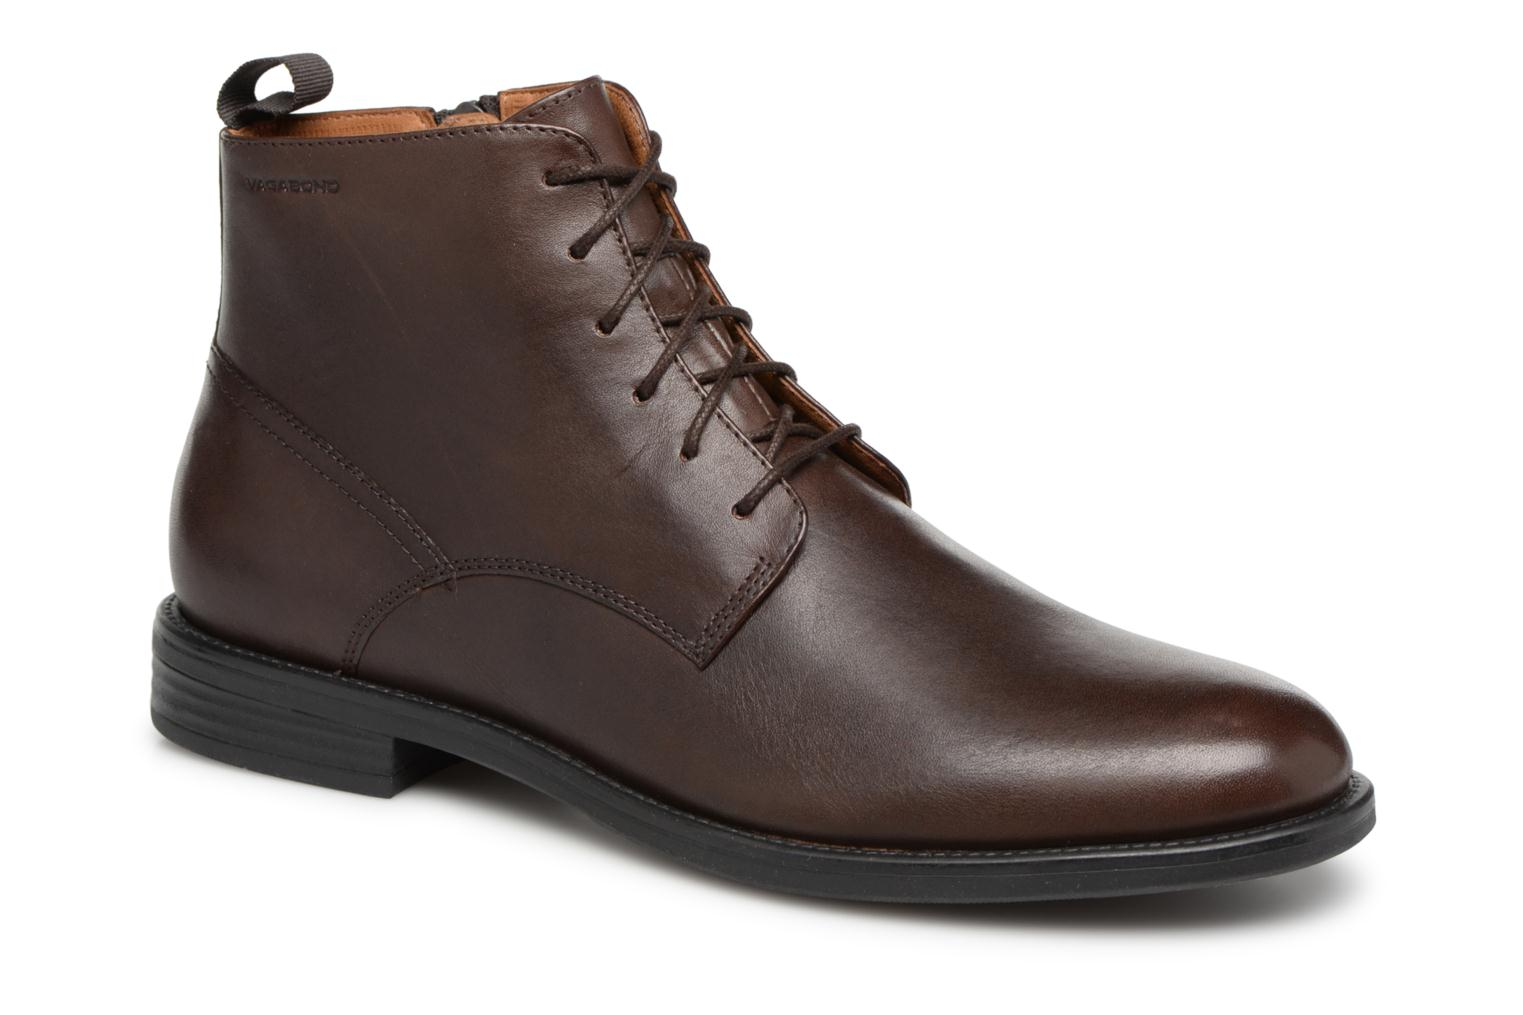 Salvatore 4664-001 par Vagabond Shoemakers